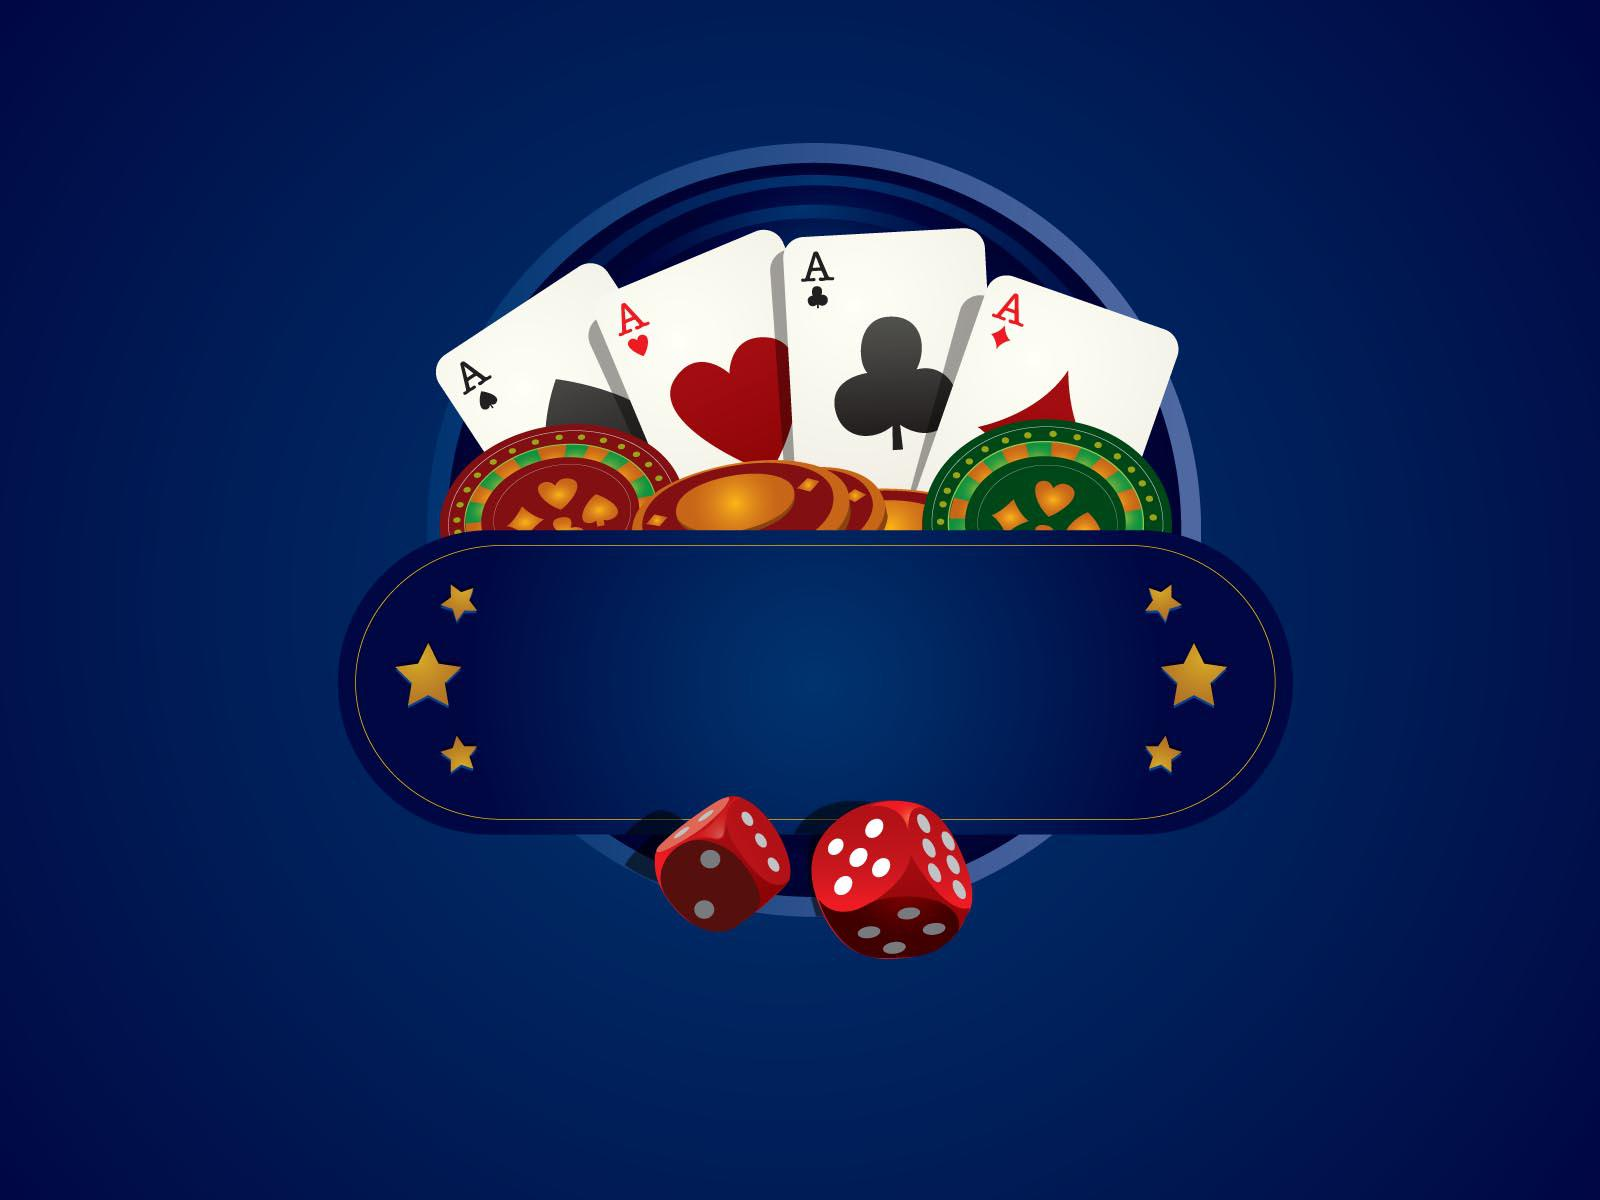 Casino - Relax, It is Play Time!